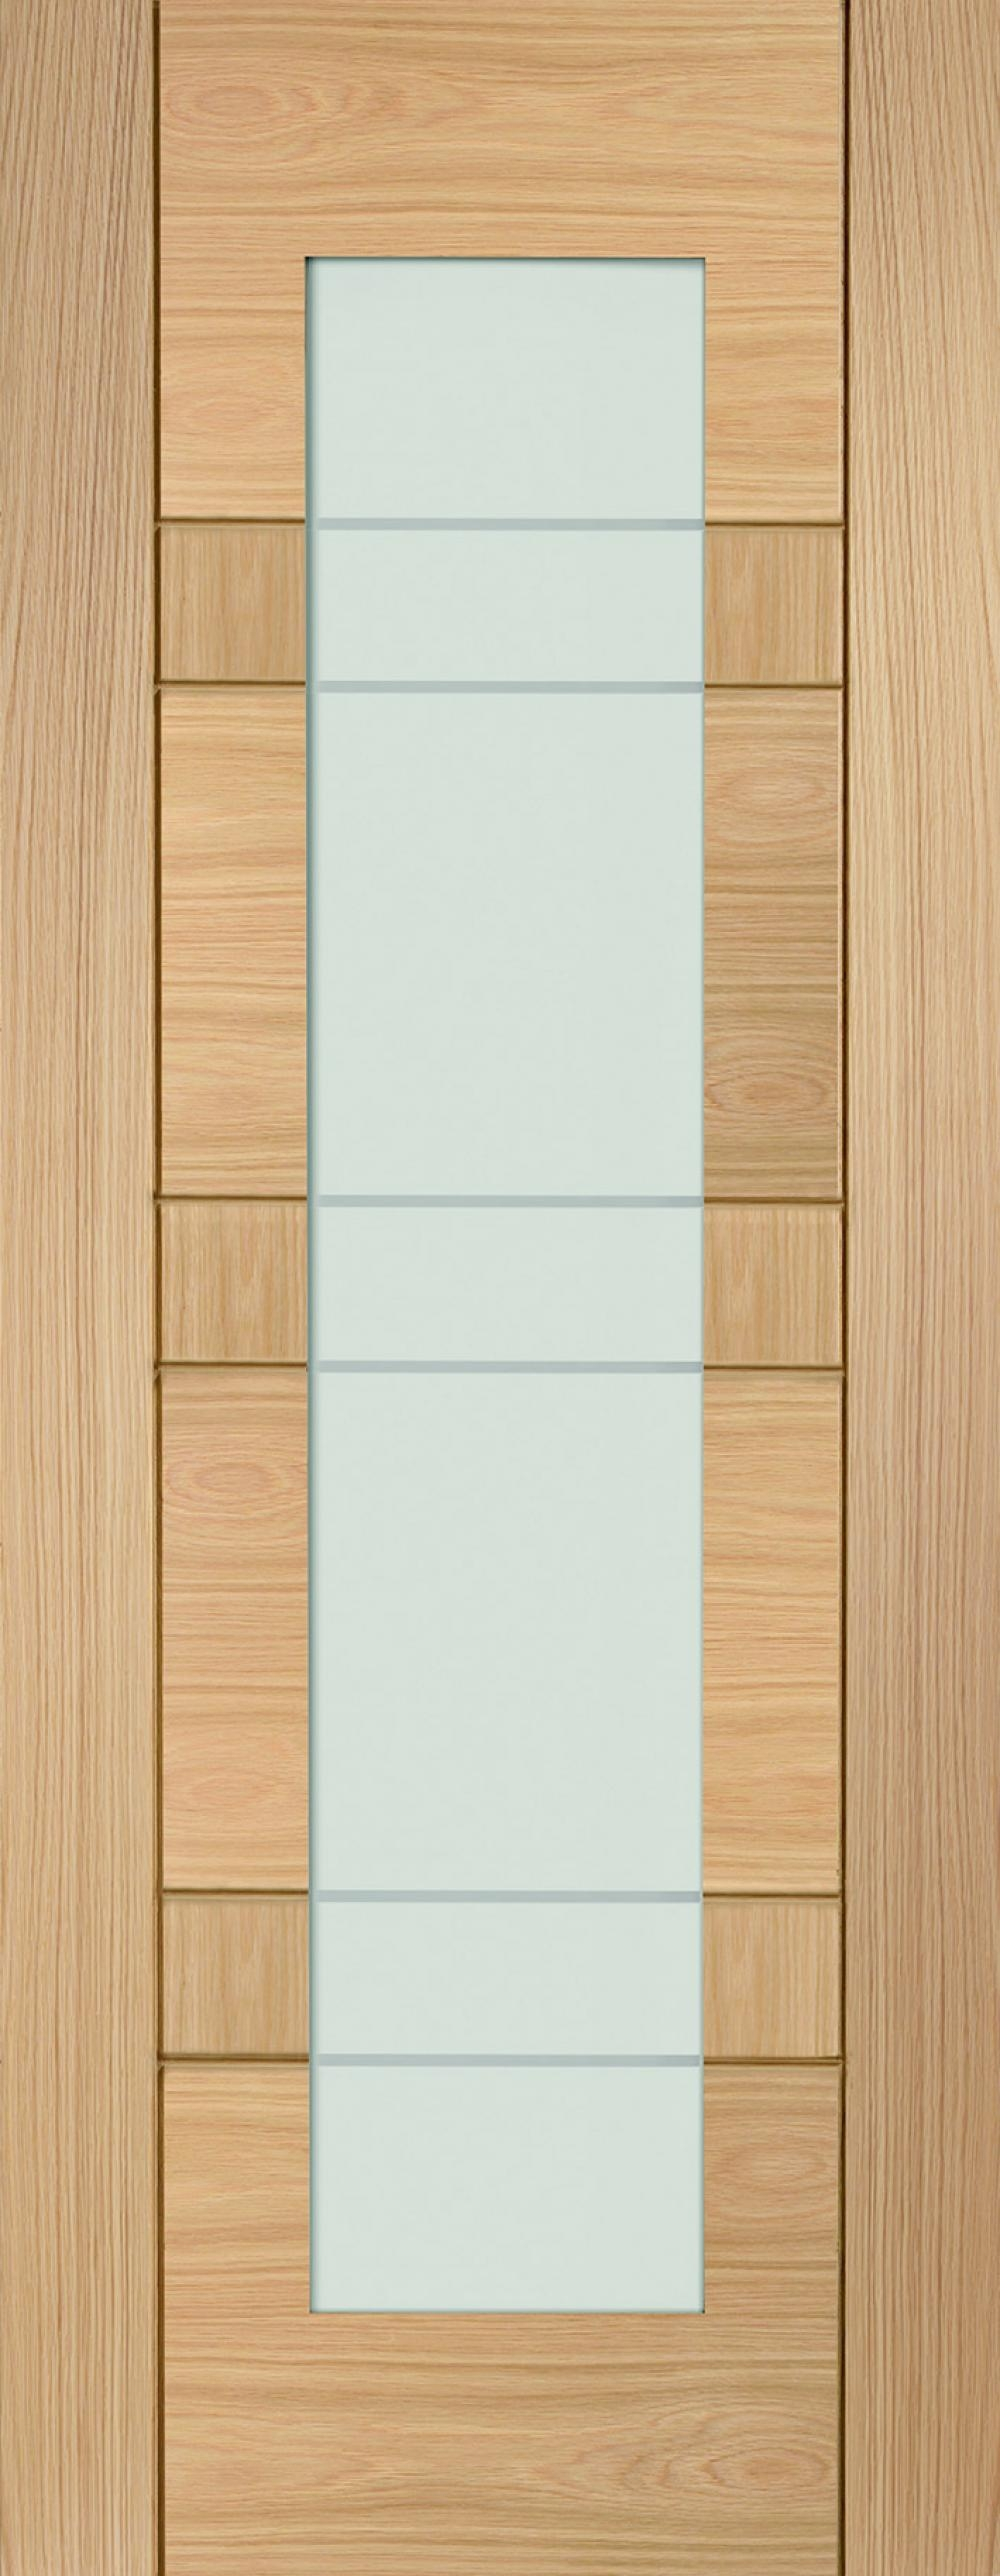 Latina Oak - Clear Etched Glass:  Image